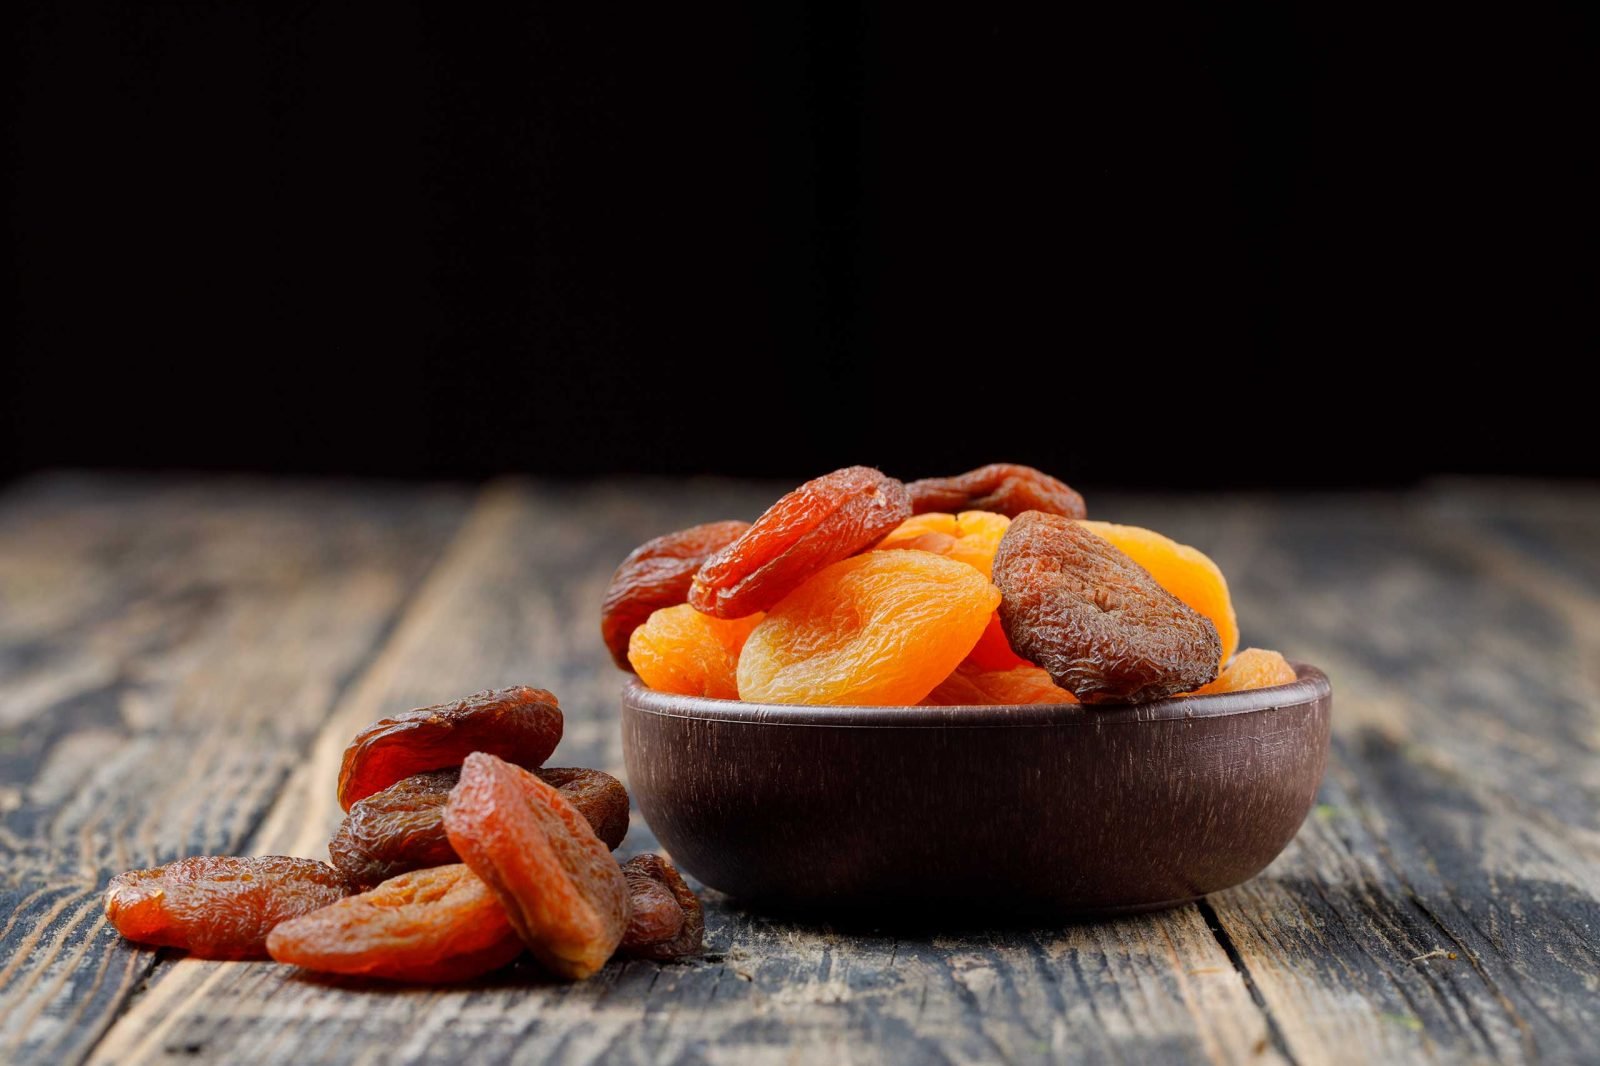 dried-apricots-wooden-table1